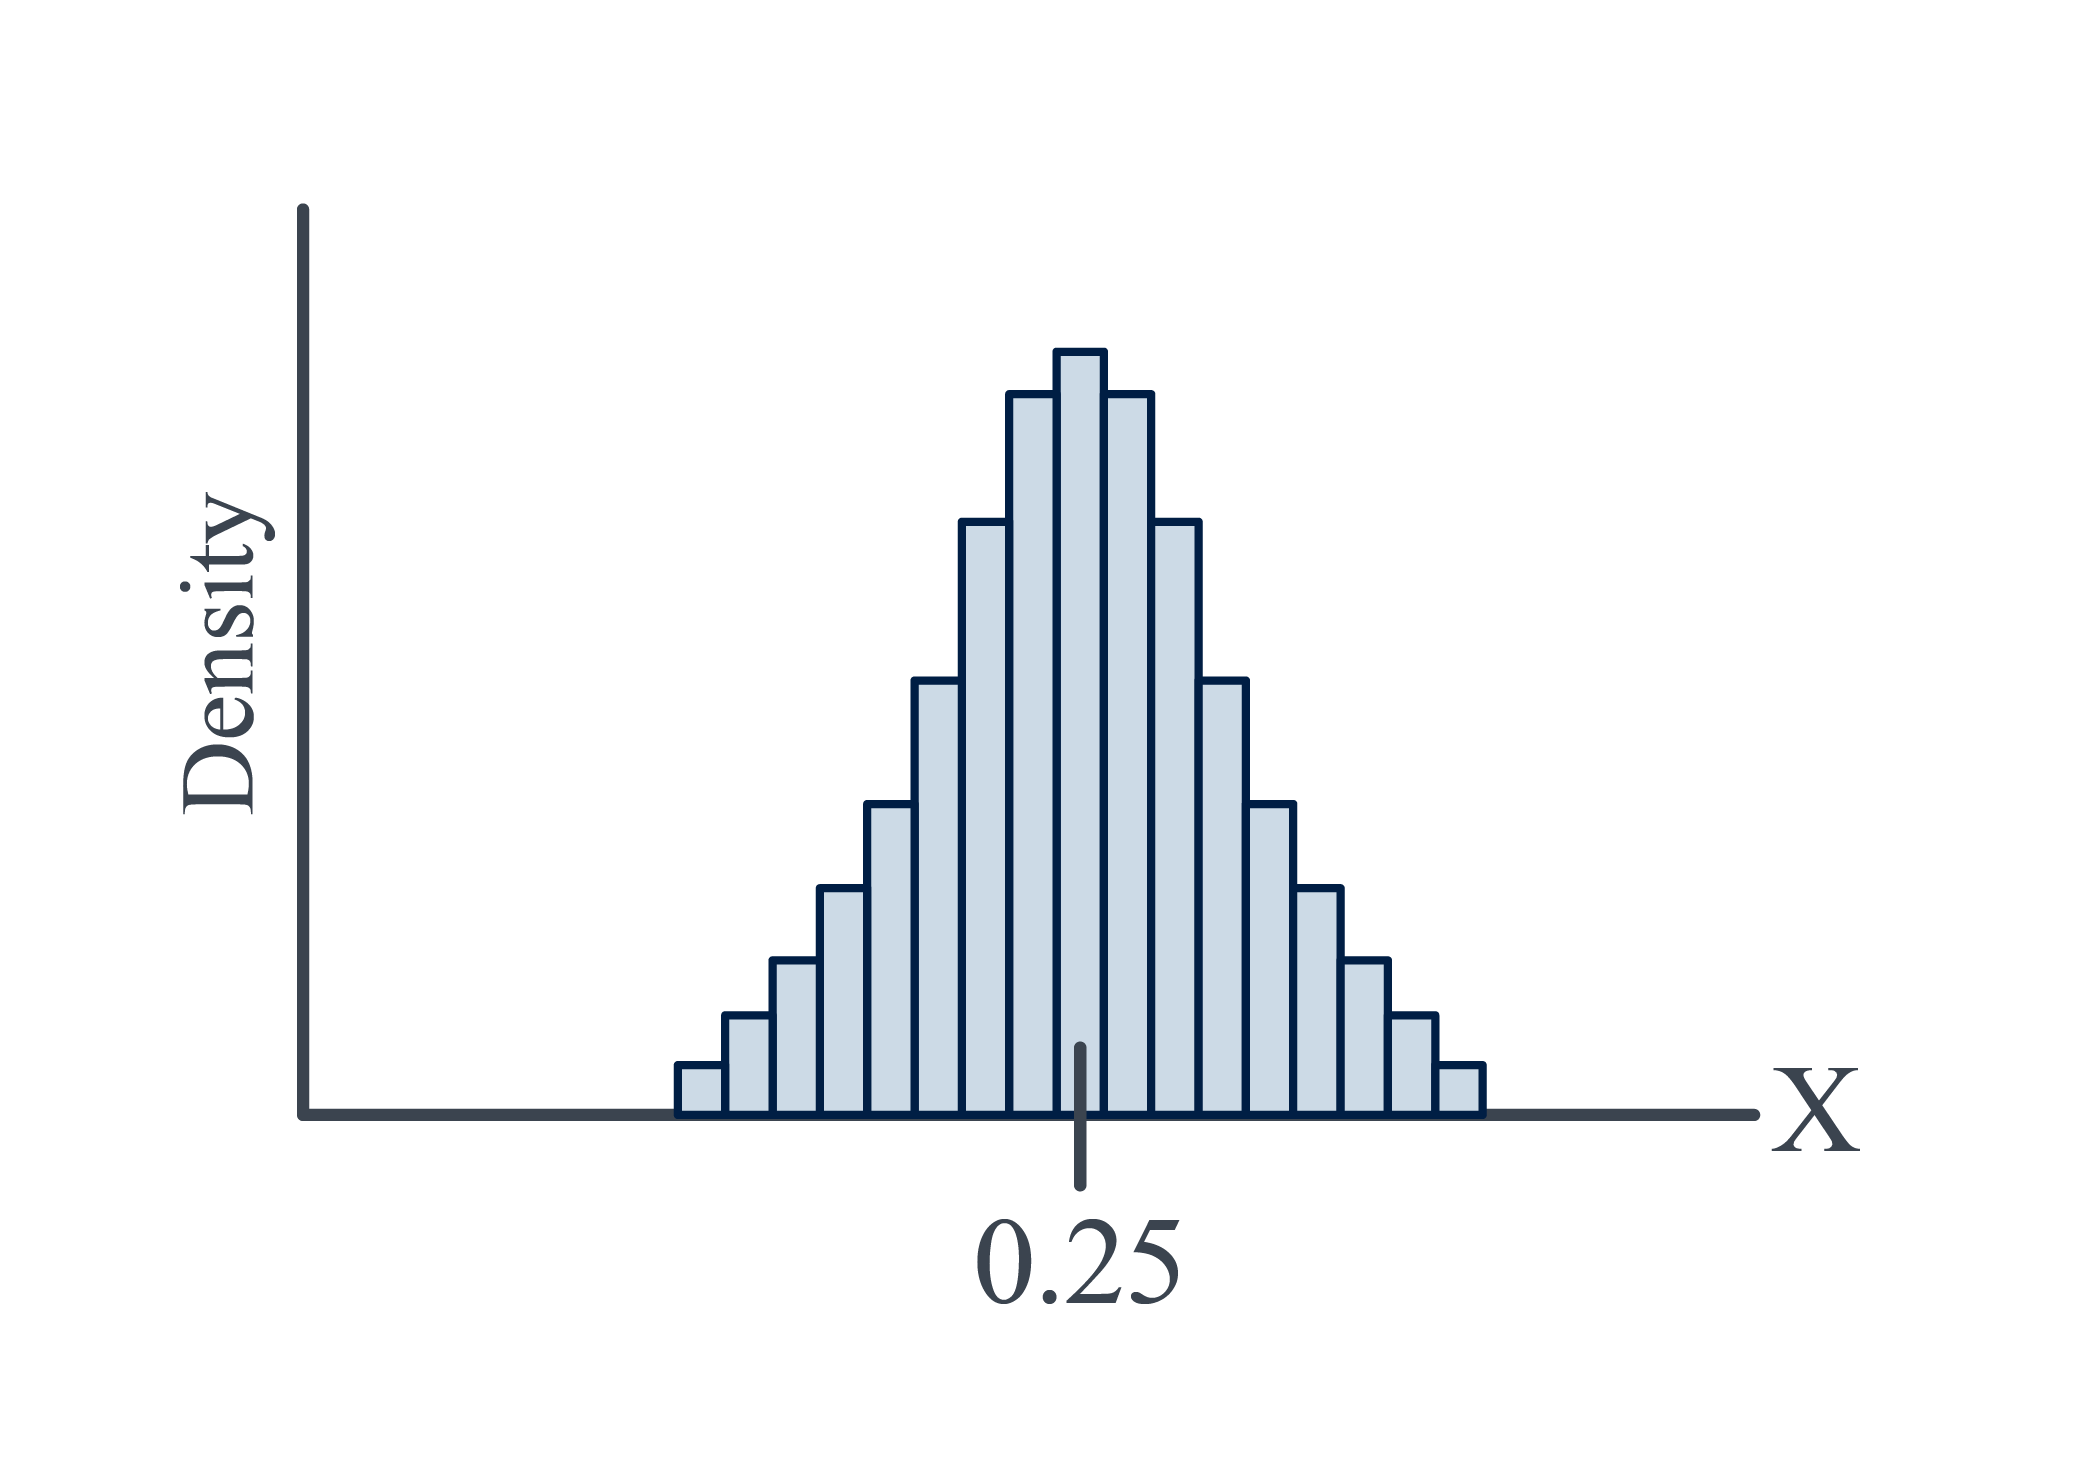 Density histogram of 100 hamburgers